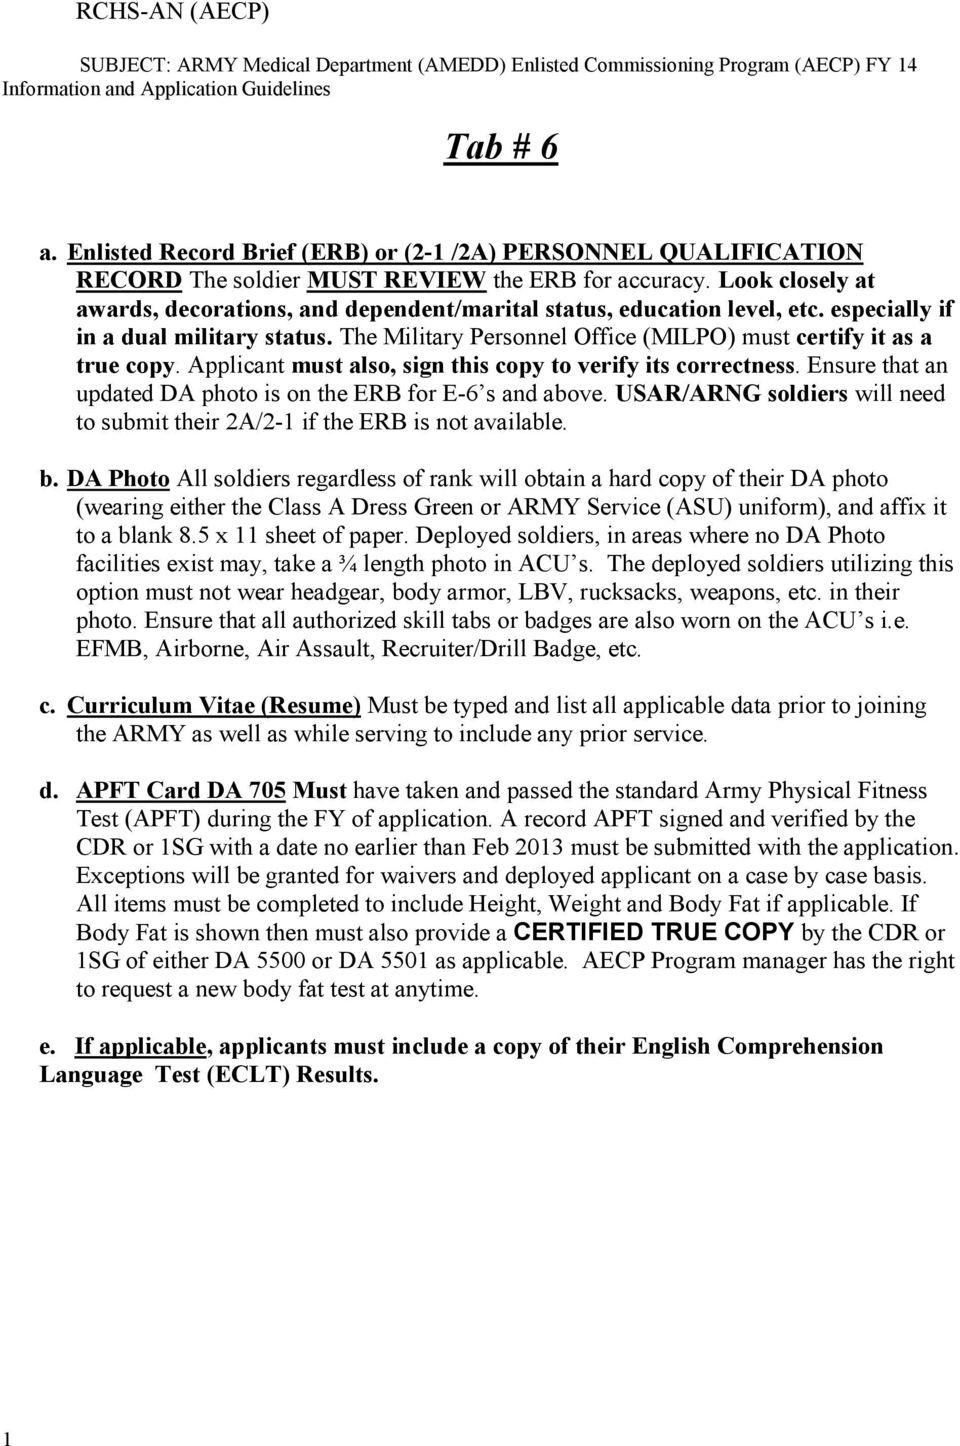 AMEDD Enlisted Commissioning Program Guidelines For ARMY Enlisted ...